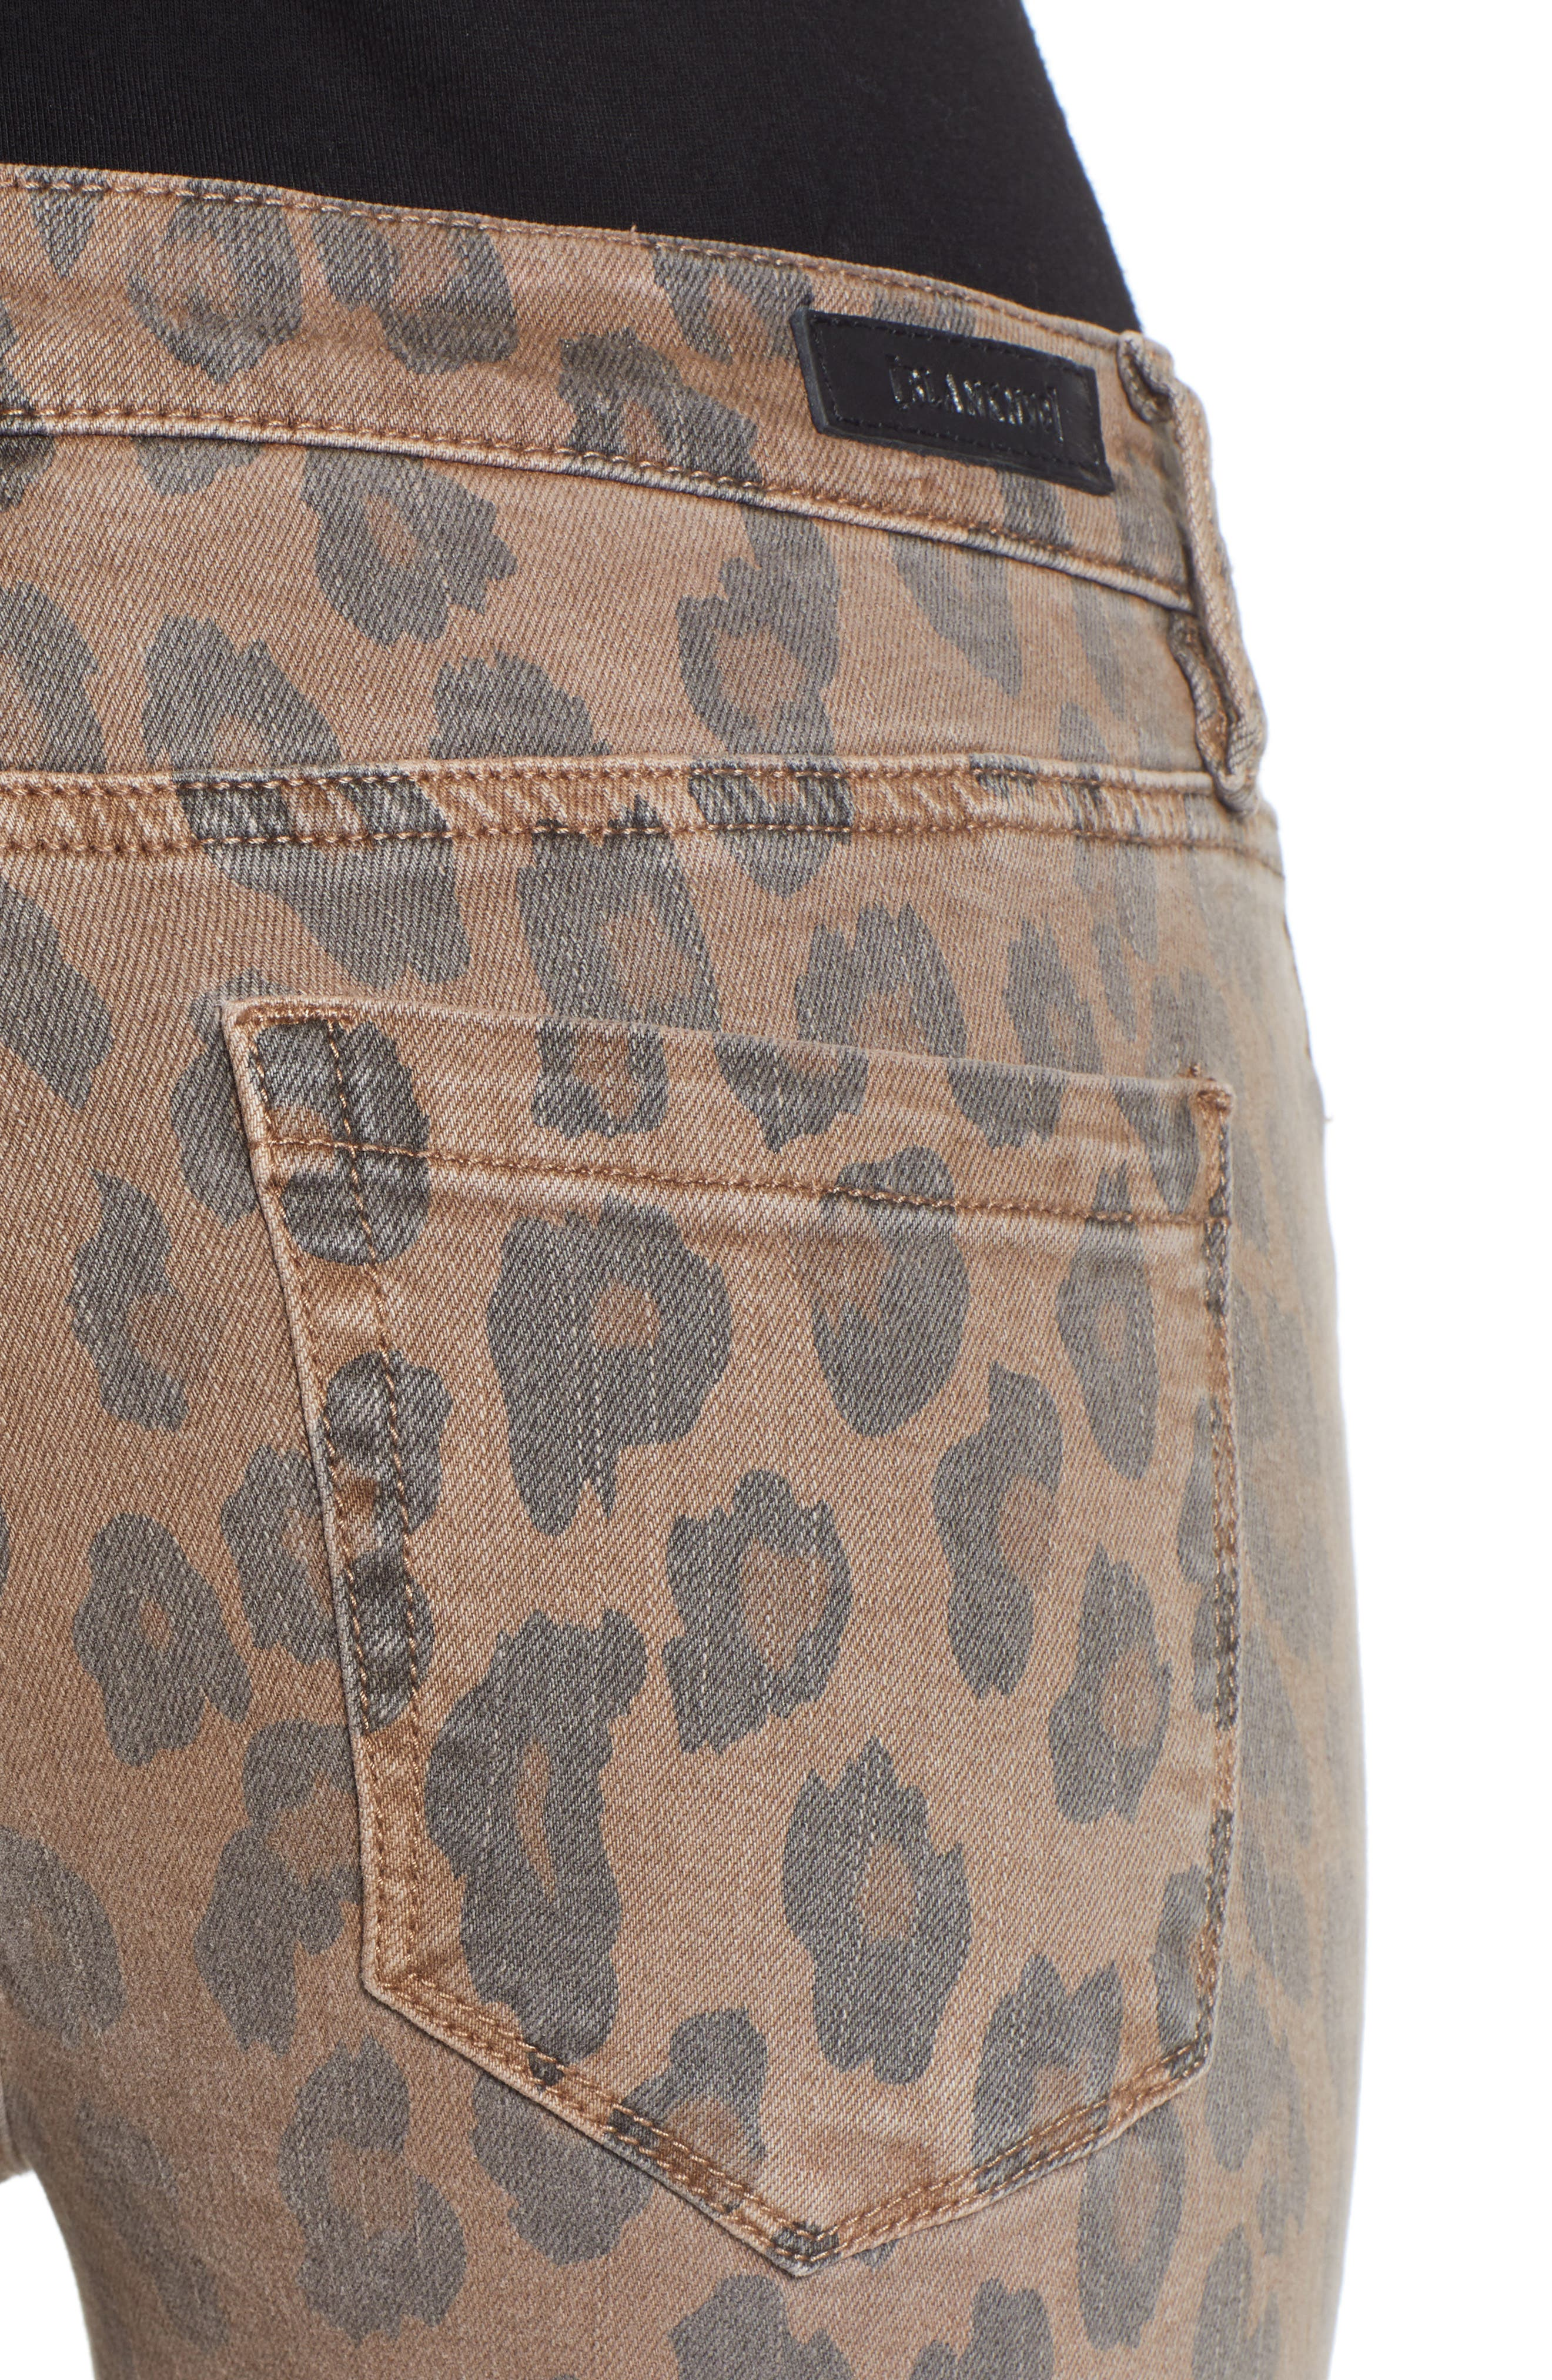 BLANKNYC, The Reade Leopard Crop Skinny Jeans, Alternate thumbnail 5, color, CATWALK